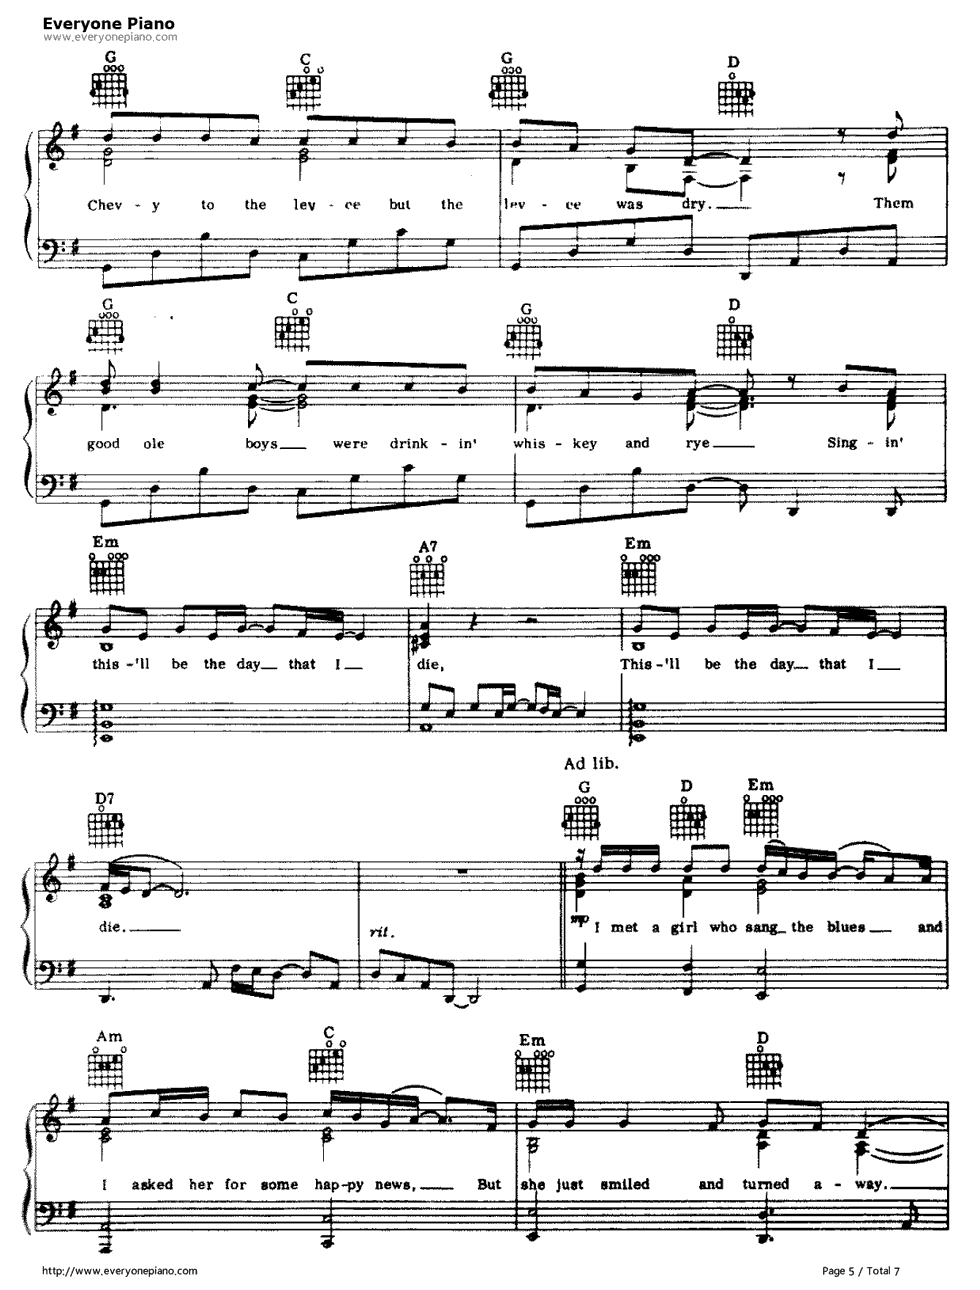 American pie don mclean stave preview 5 free piano sheet music listen now print sheet american pie don mclean stave preview 5 hexwebz Gallery